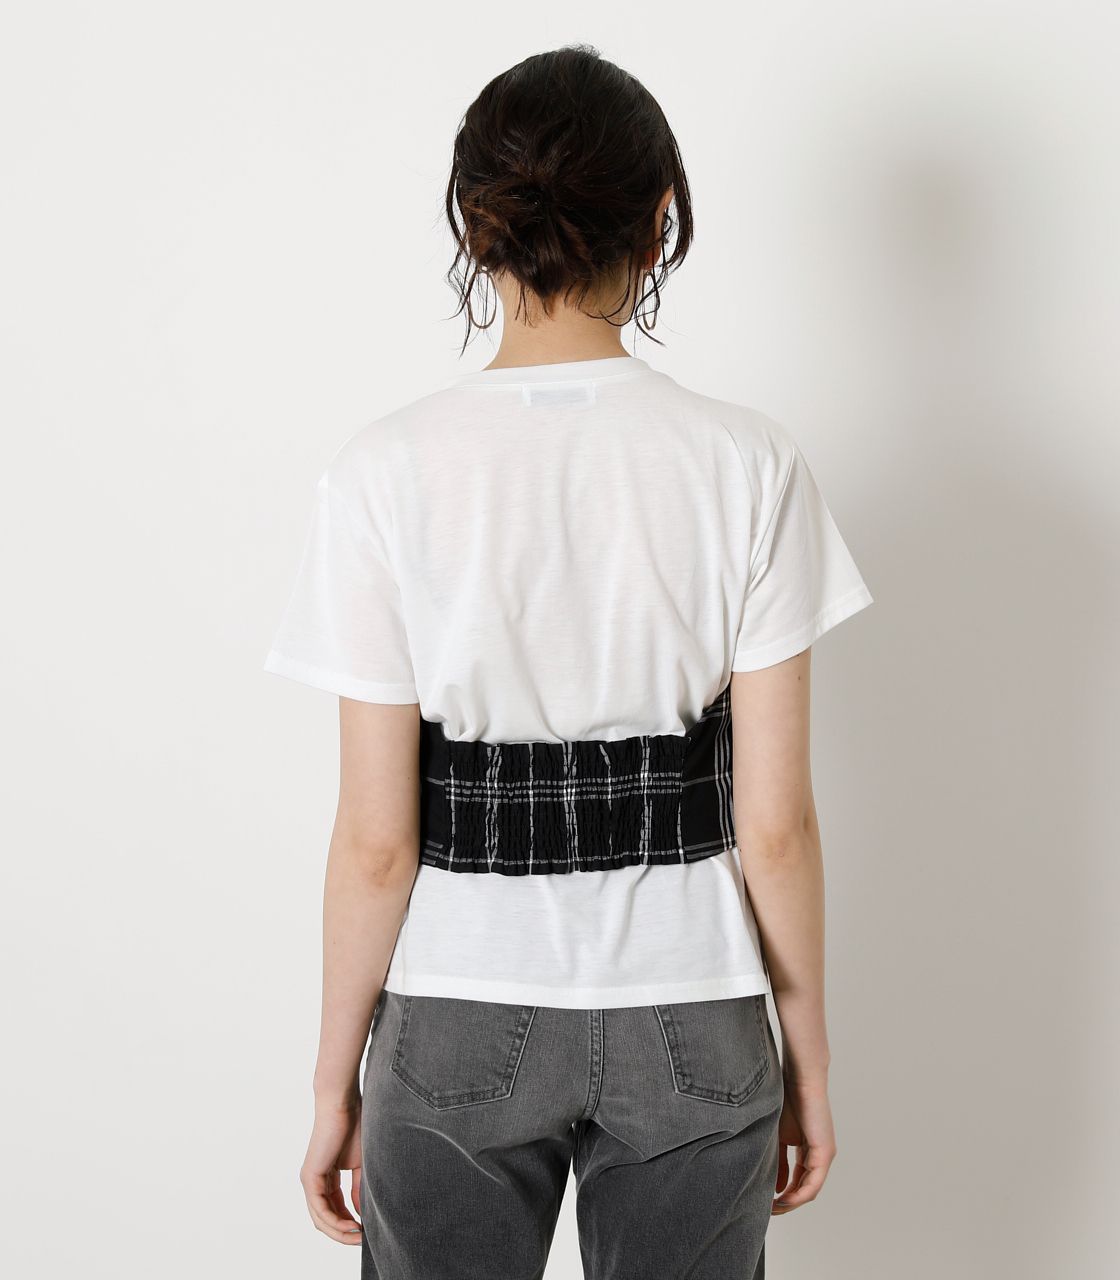 ONESHOULDER CHECK BUSTIER TOPS/ワンショルダーチェックビジタートップス 詳細画像 柄BLK 6